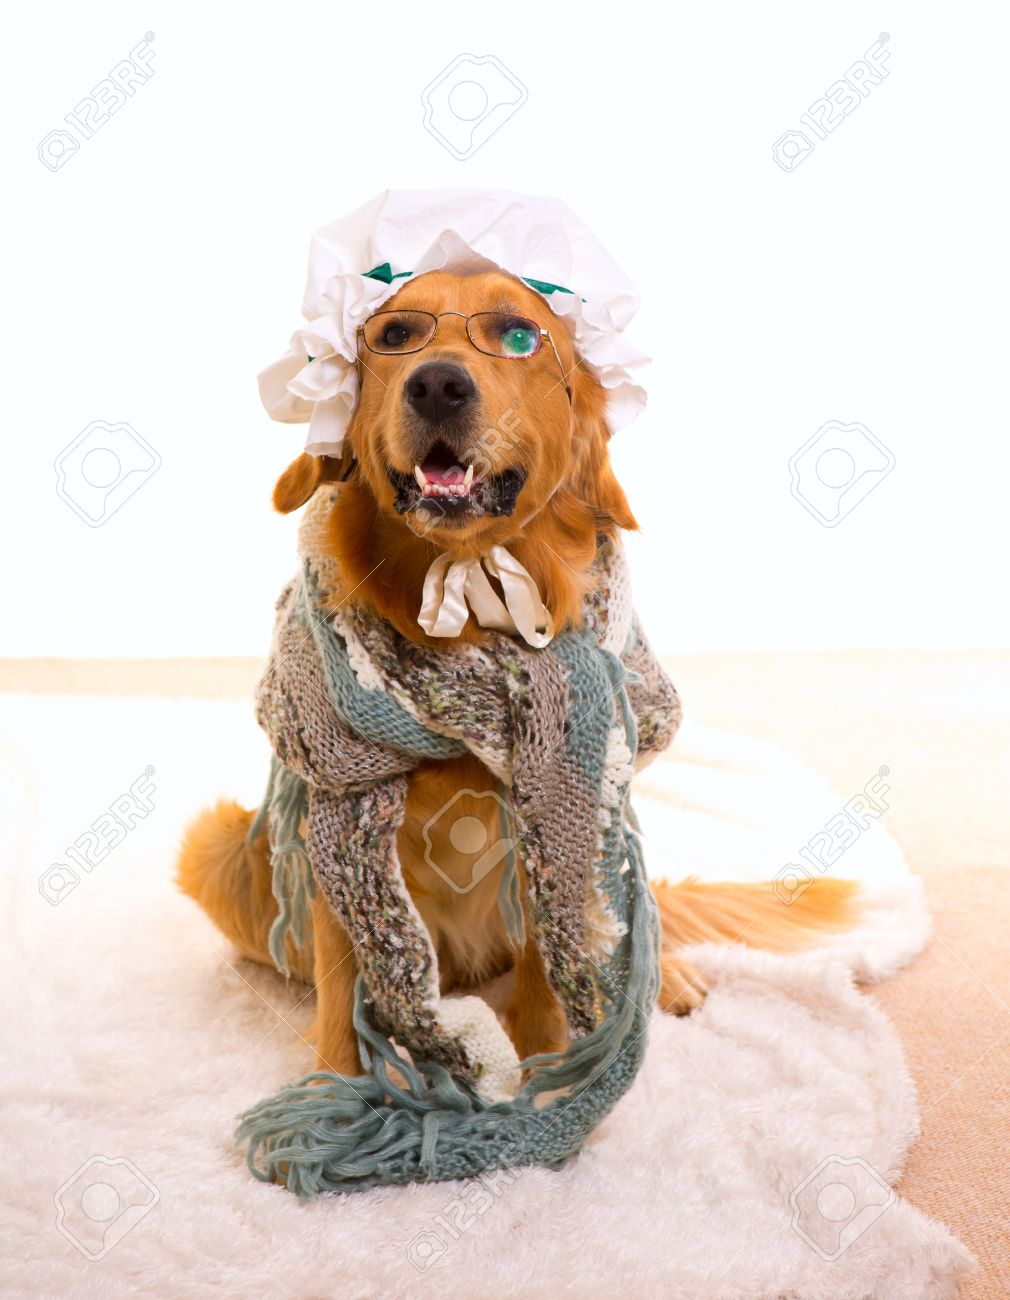 Wolf dog dressed as grandma golden retriever as Baby Little Red Riding Hood tale Stock Photo - 17239821